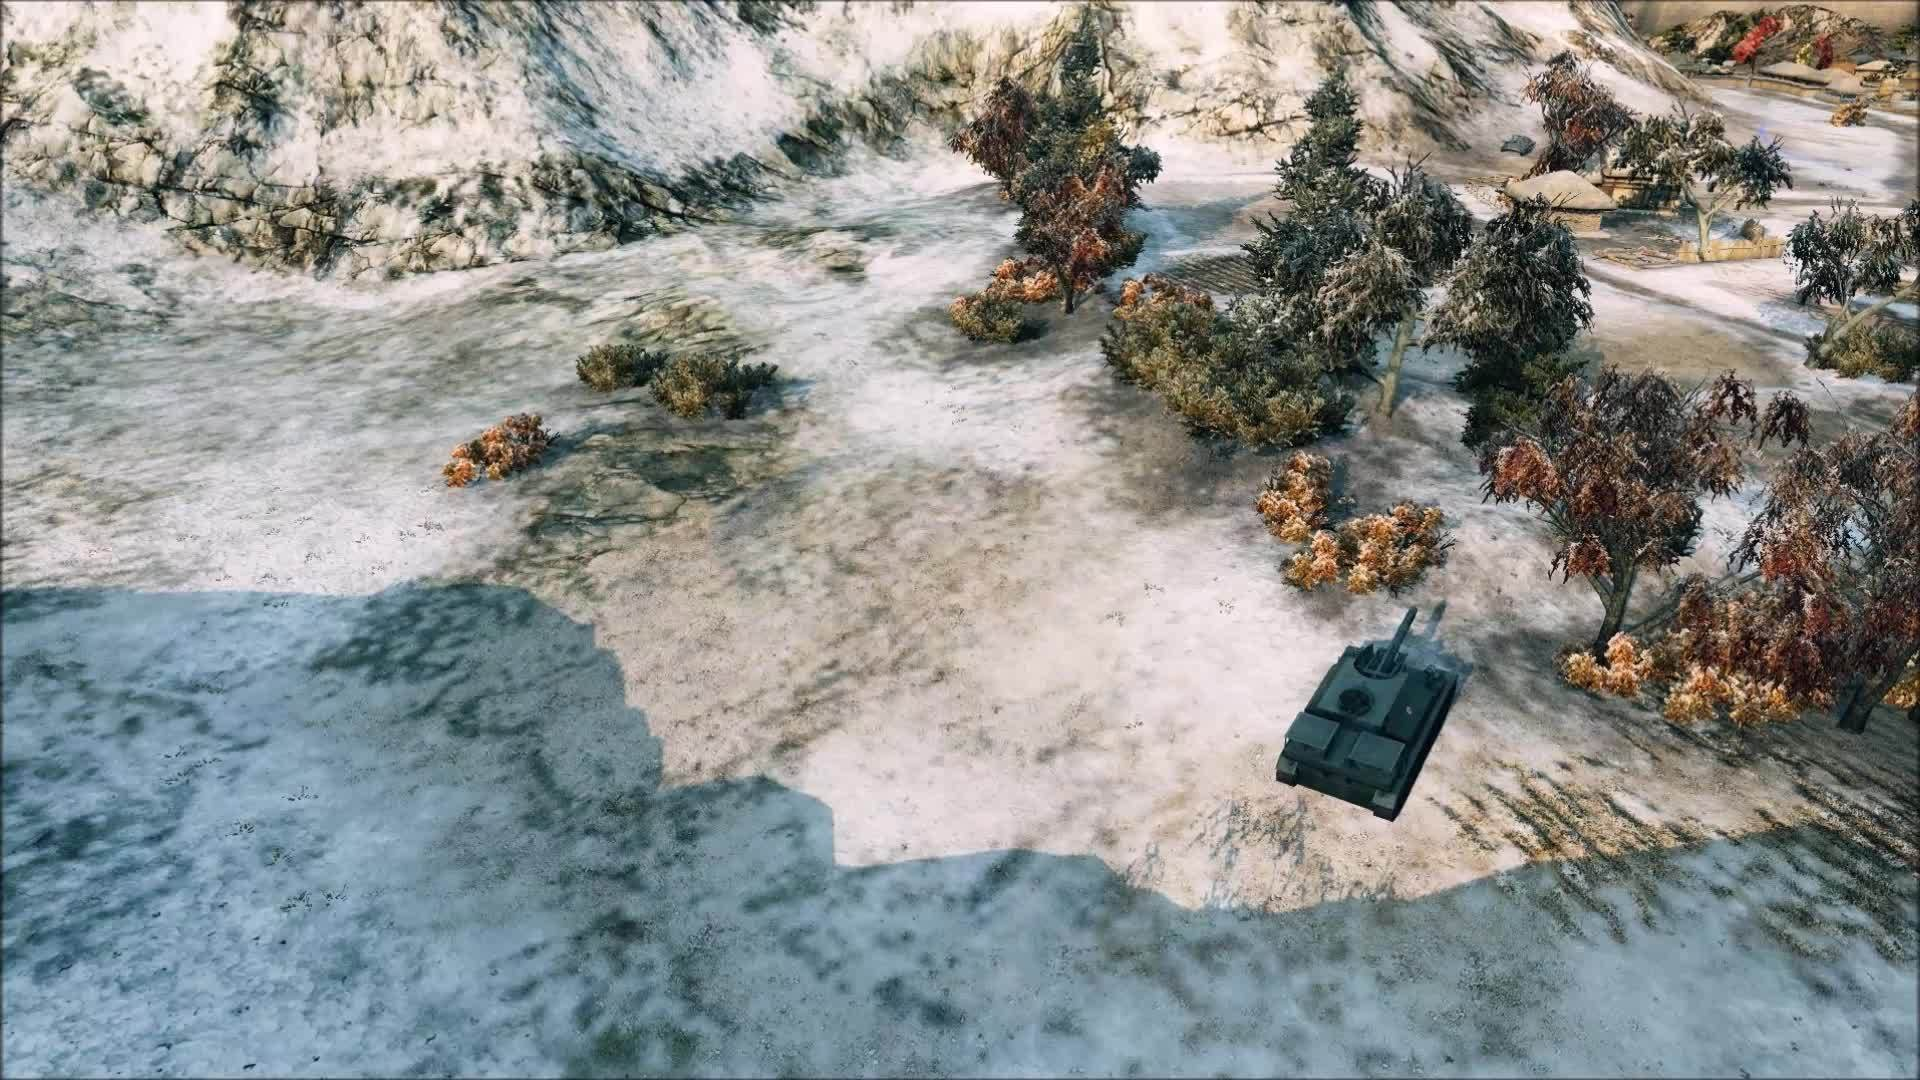 world of tanks, Now you fucked up. GIFs